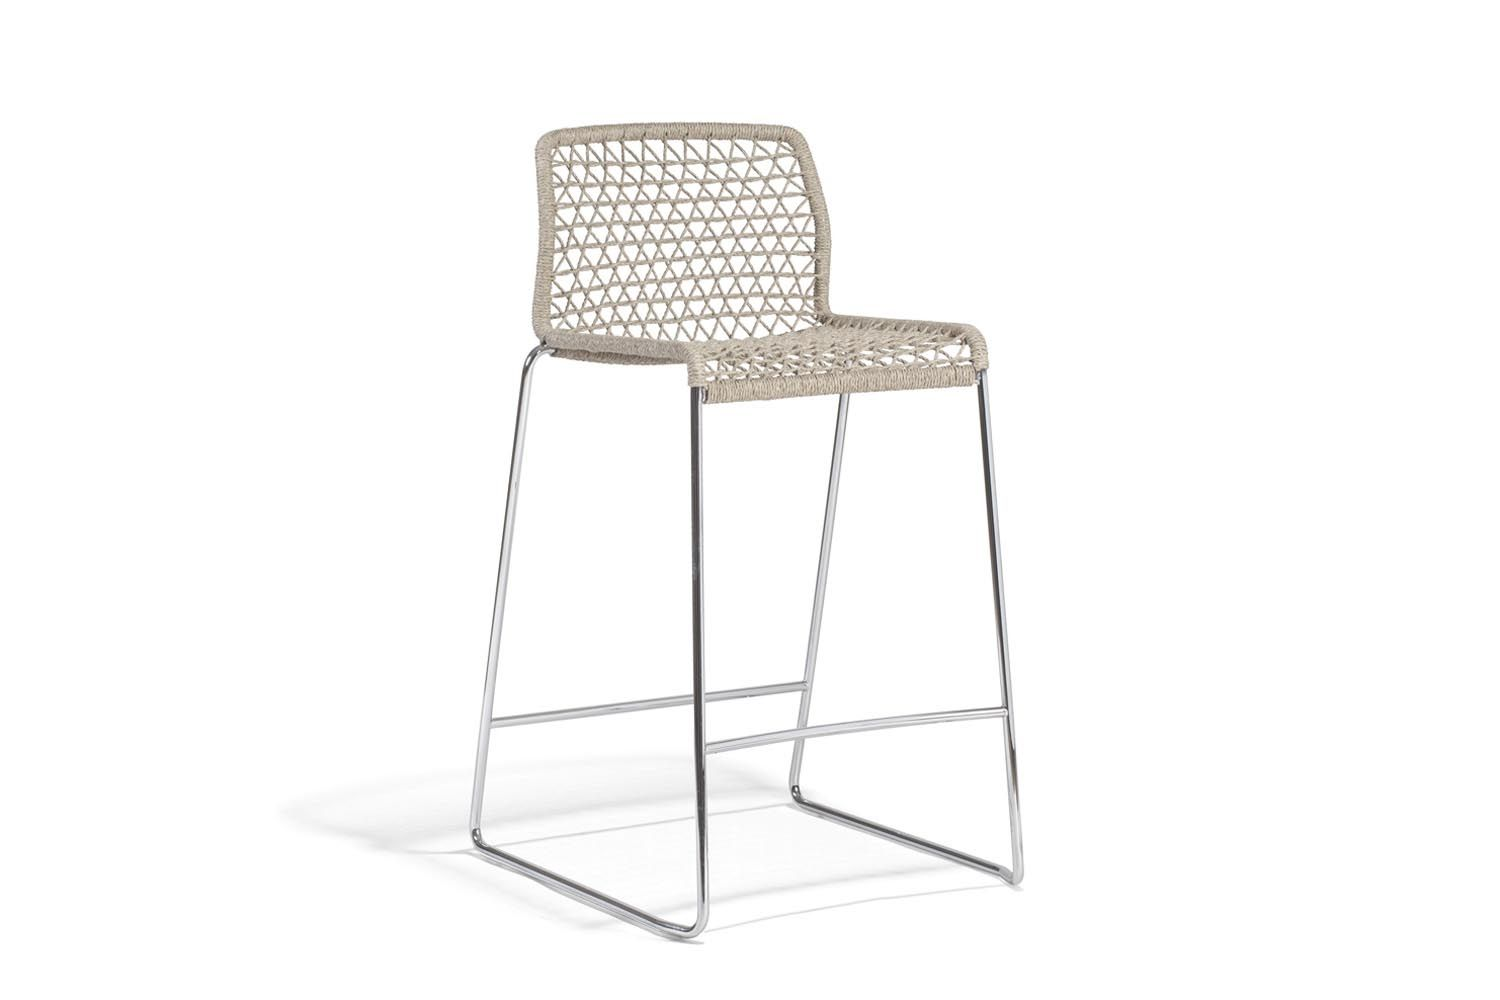 Vela Barstool by Studio Hannes Wettstein for Accademia | Beach ...